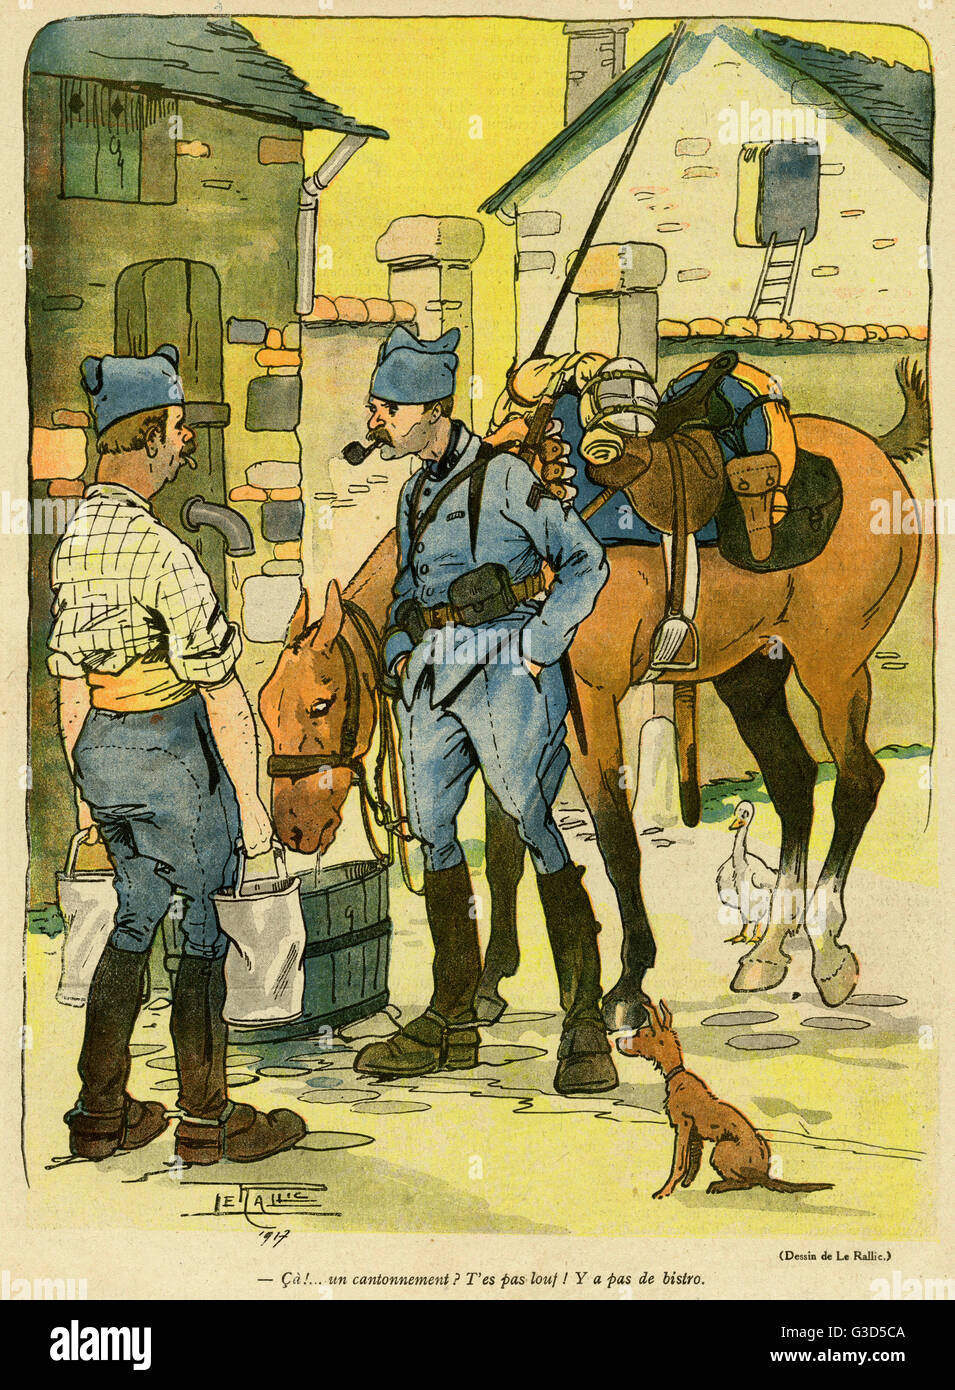 Cartoon, Soldiers discuss their billet. One of them says you can hardly call it a billet, as there's no bistro! - Stock Image